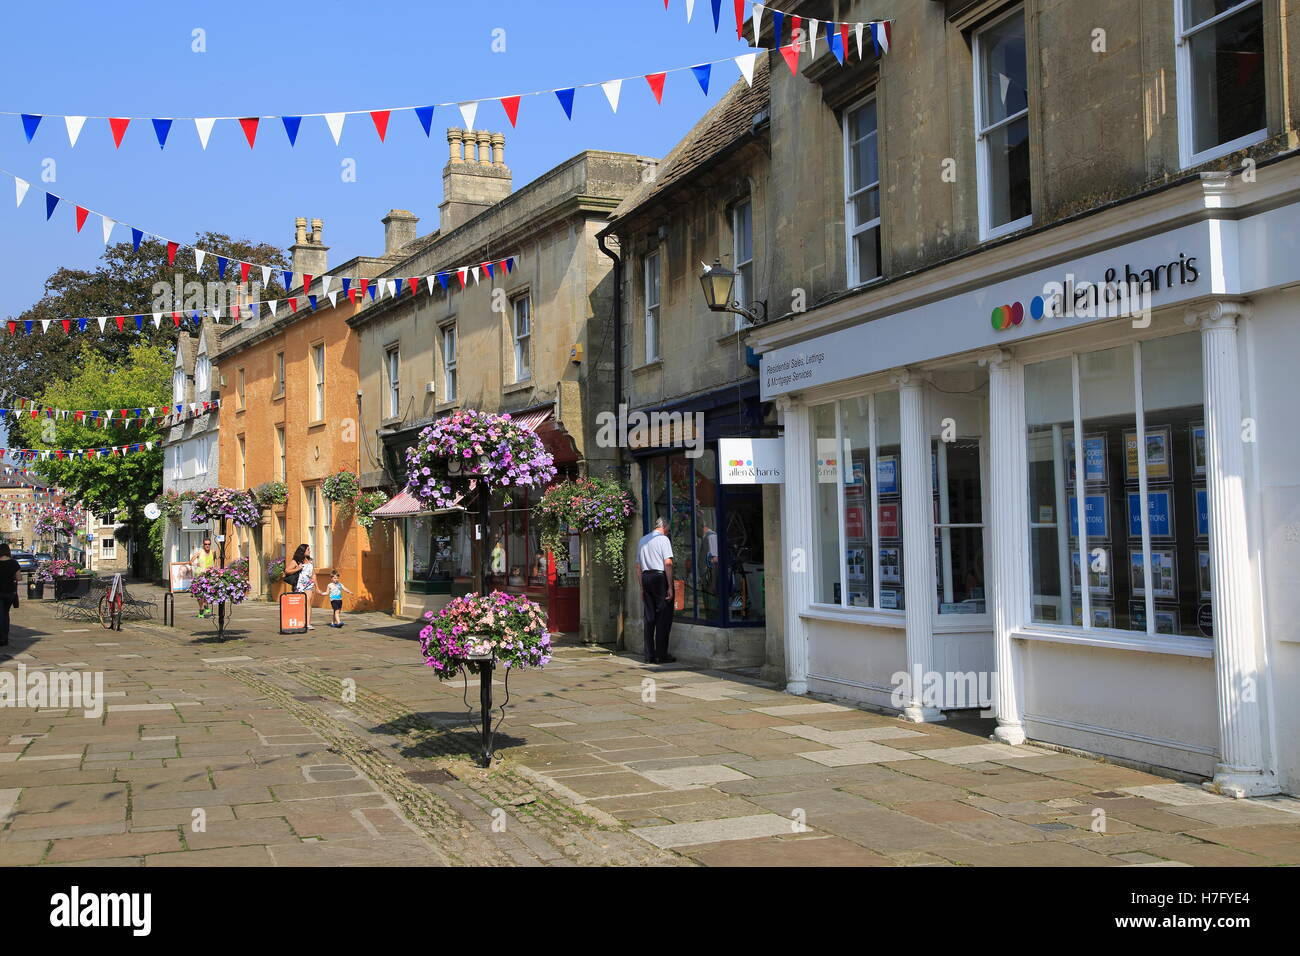 Historic buildings in town of Corsham, Wiltshire, England, UK Stock Photo